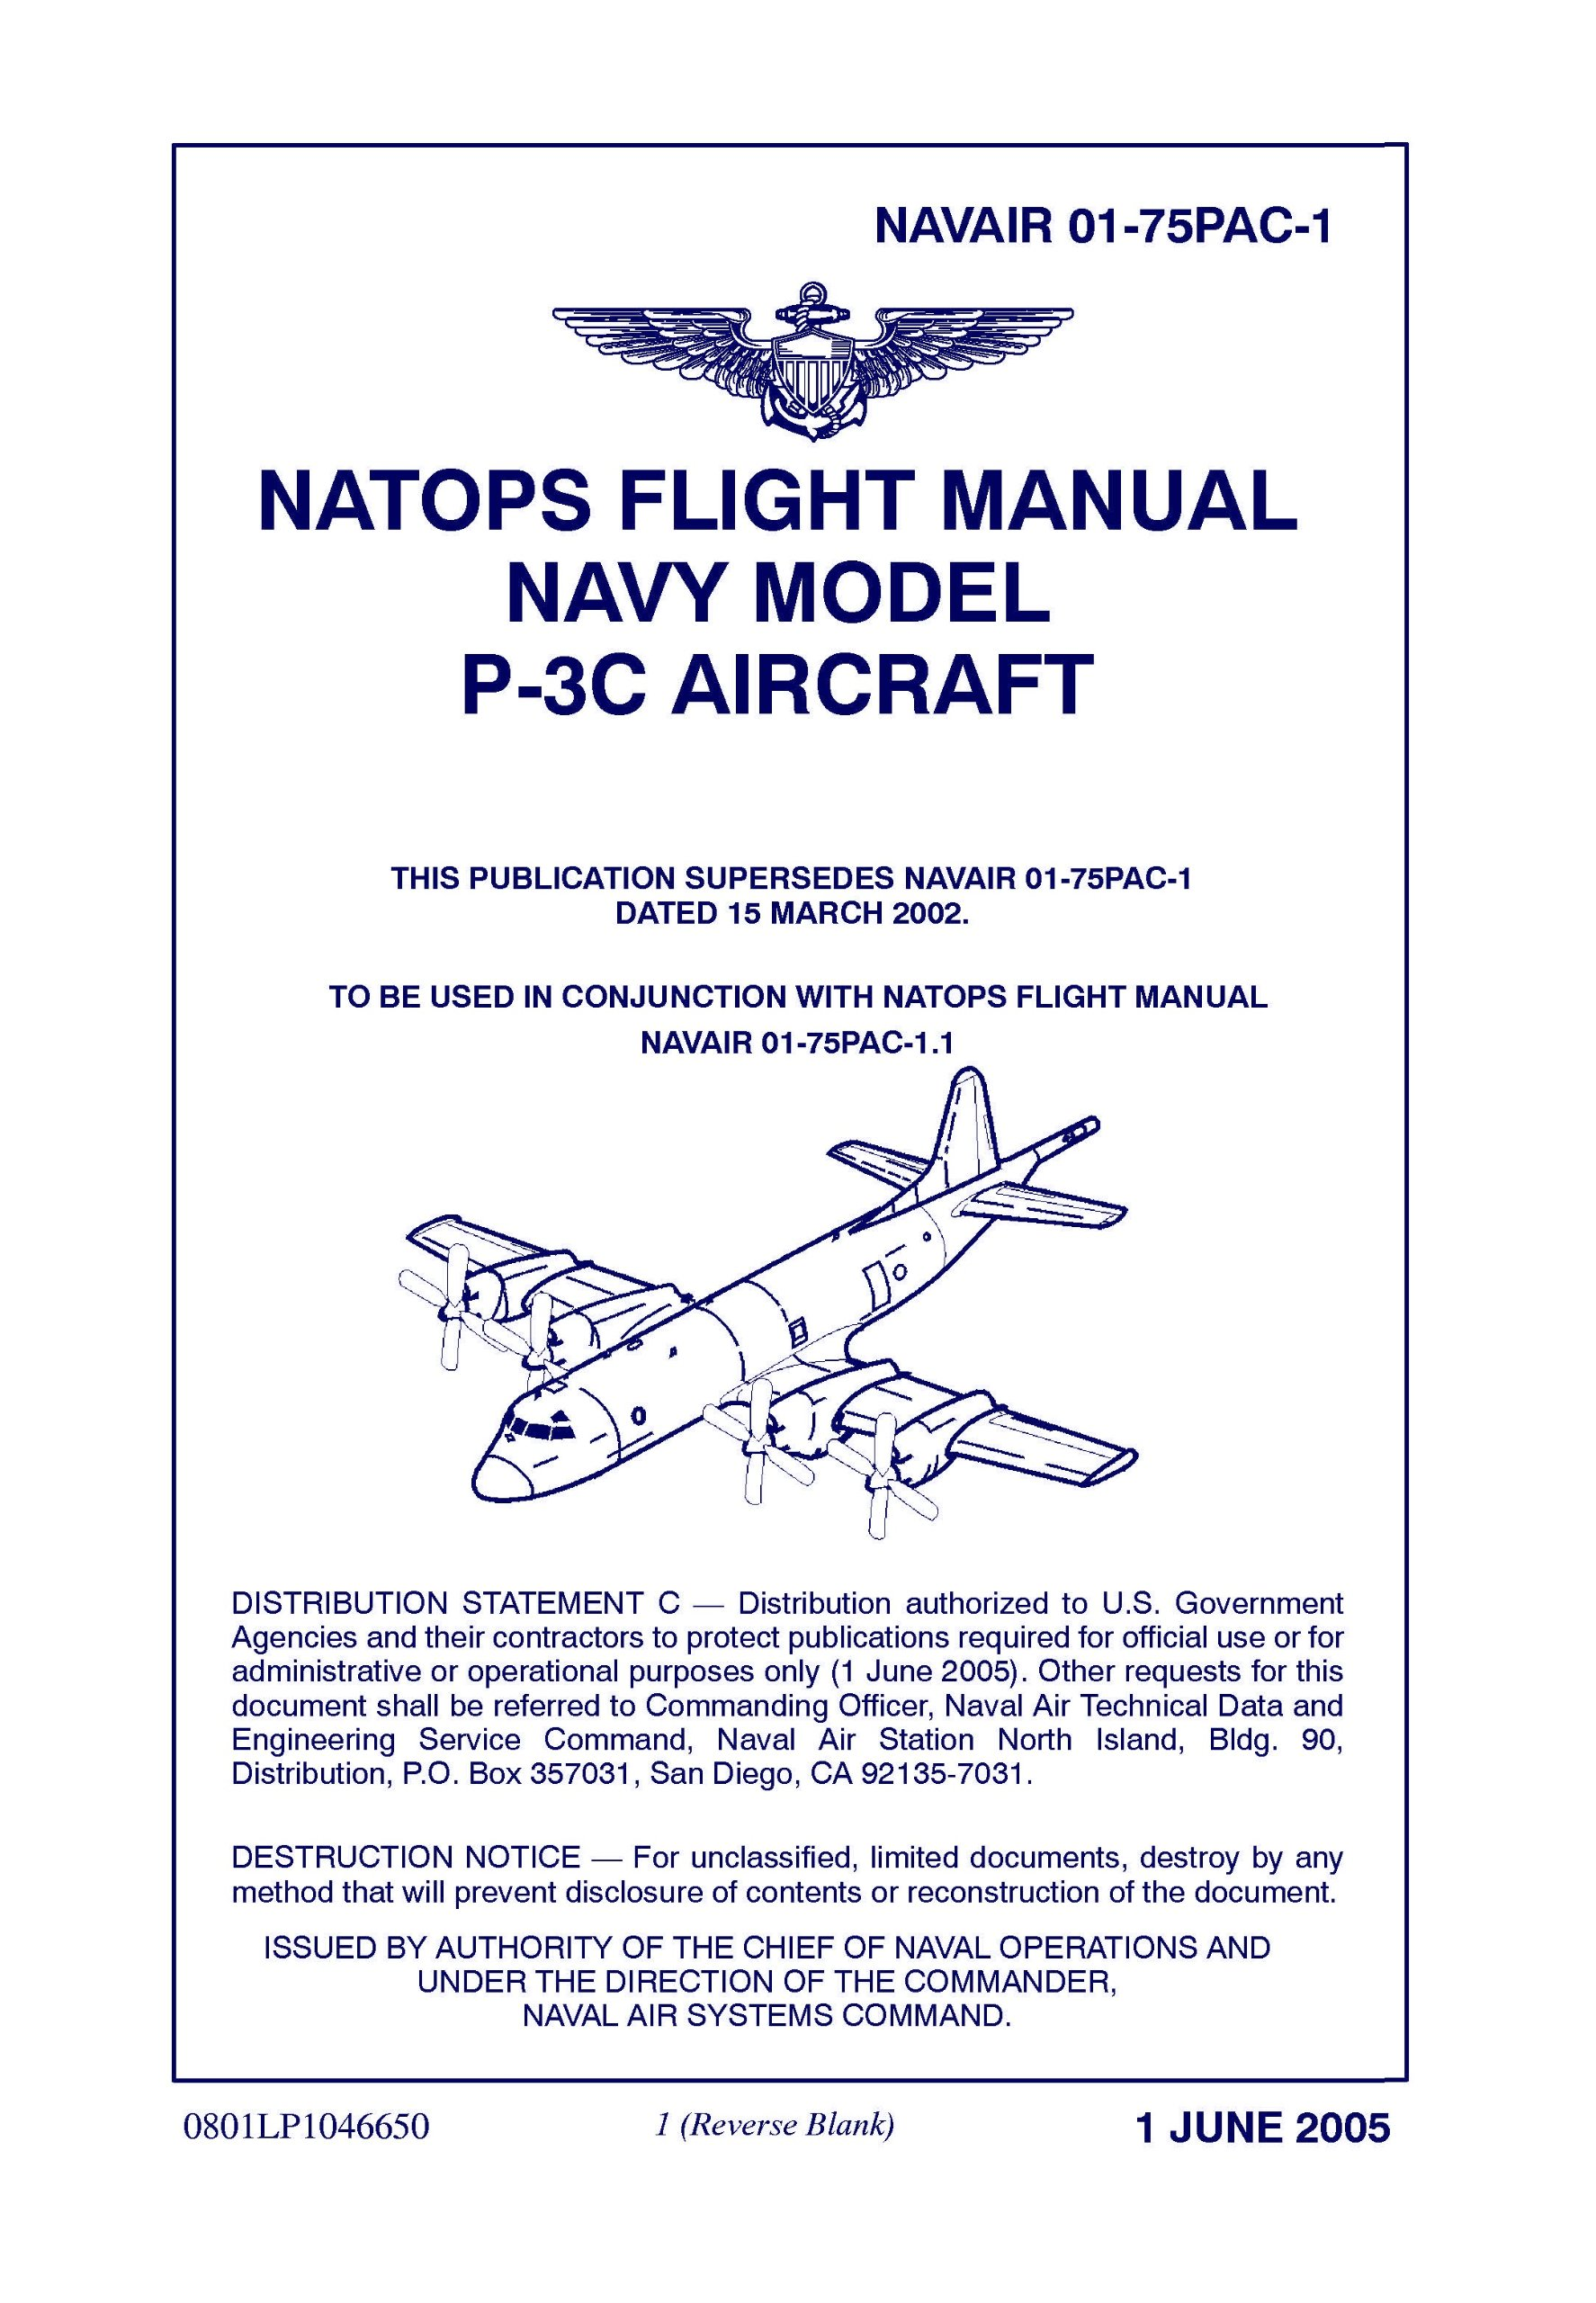 NATOPS P-3C Aircraft Flight Manual 01-75pac-1 [loose Leaf Edition]:  Department of the Navy, Naval Air Systems Command: Amazon.com: Books